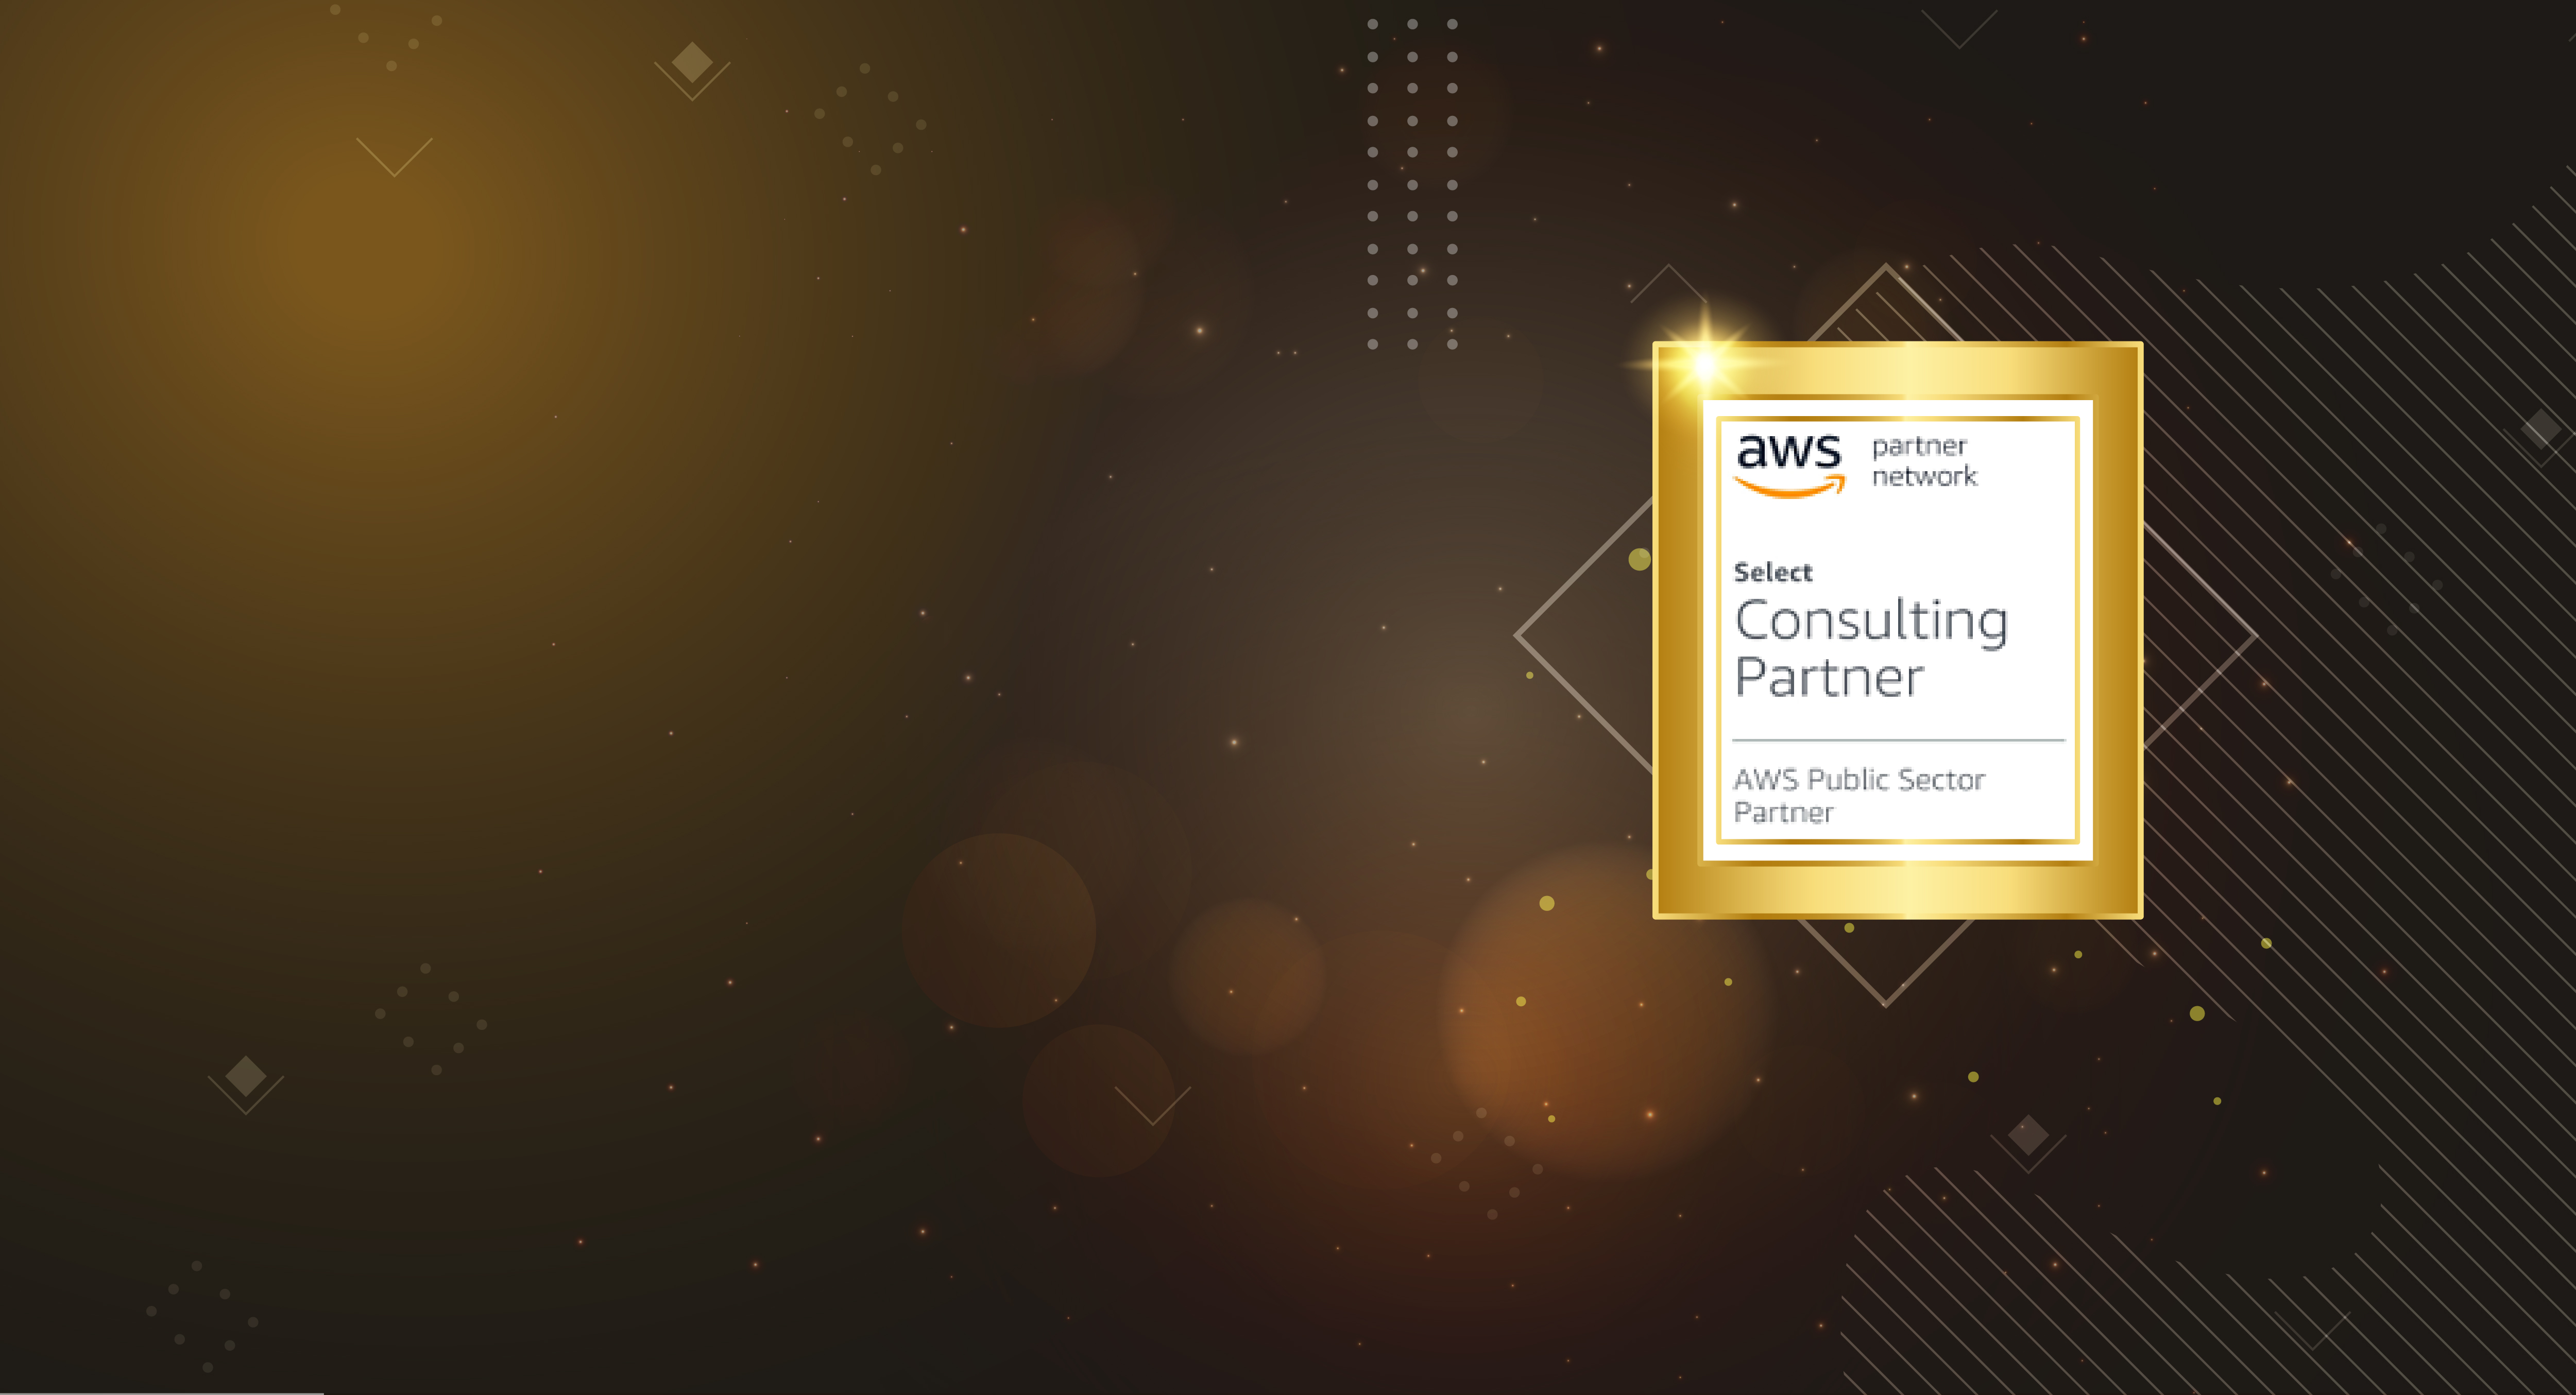 Clairvoyant, now recognized by AWS Public Sector Partner Program